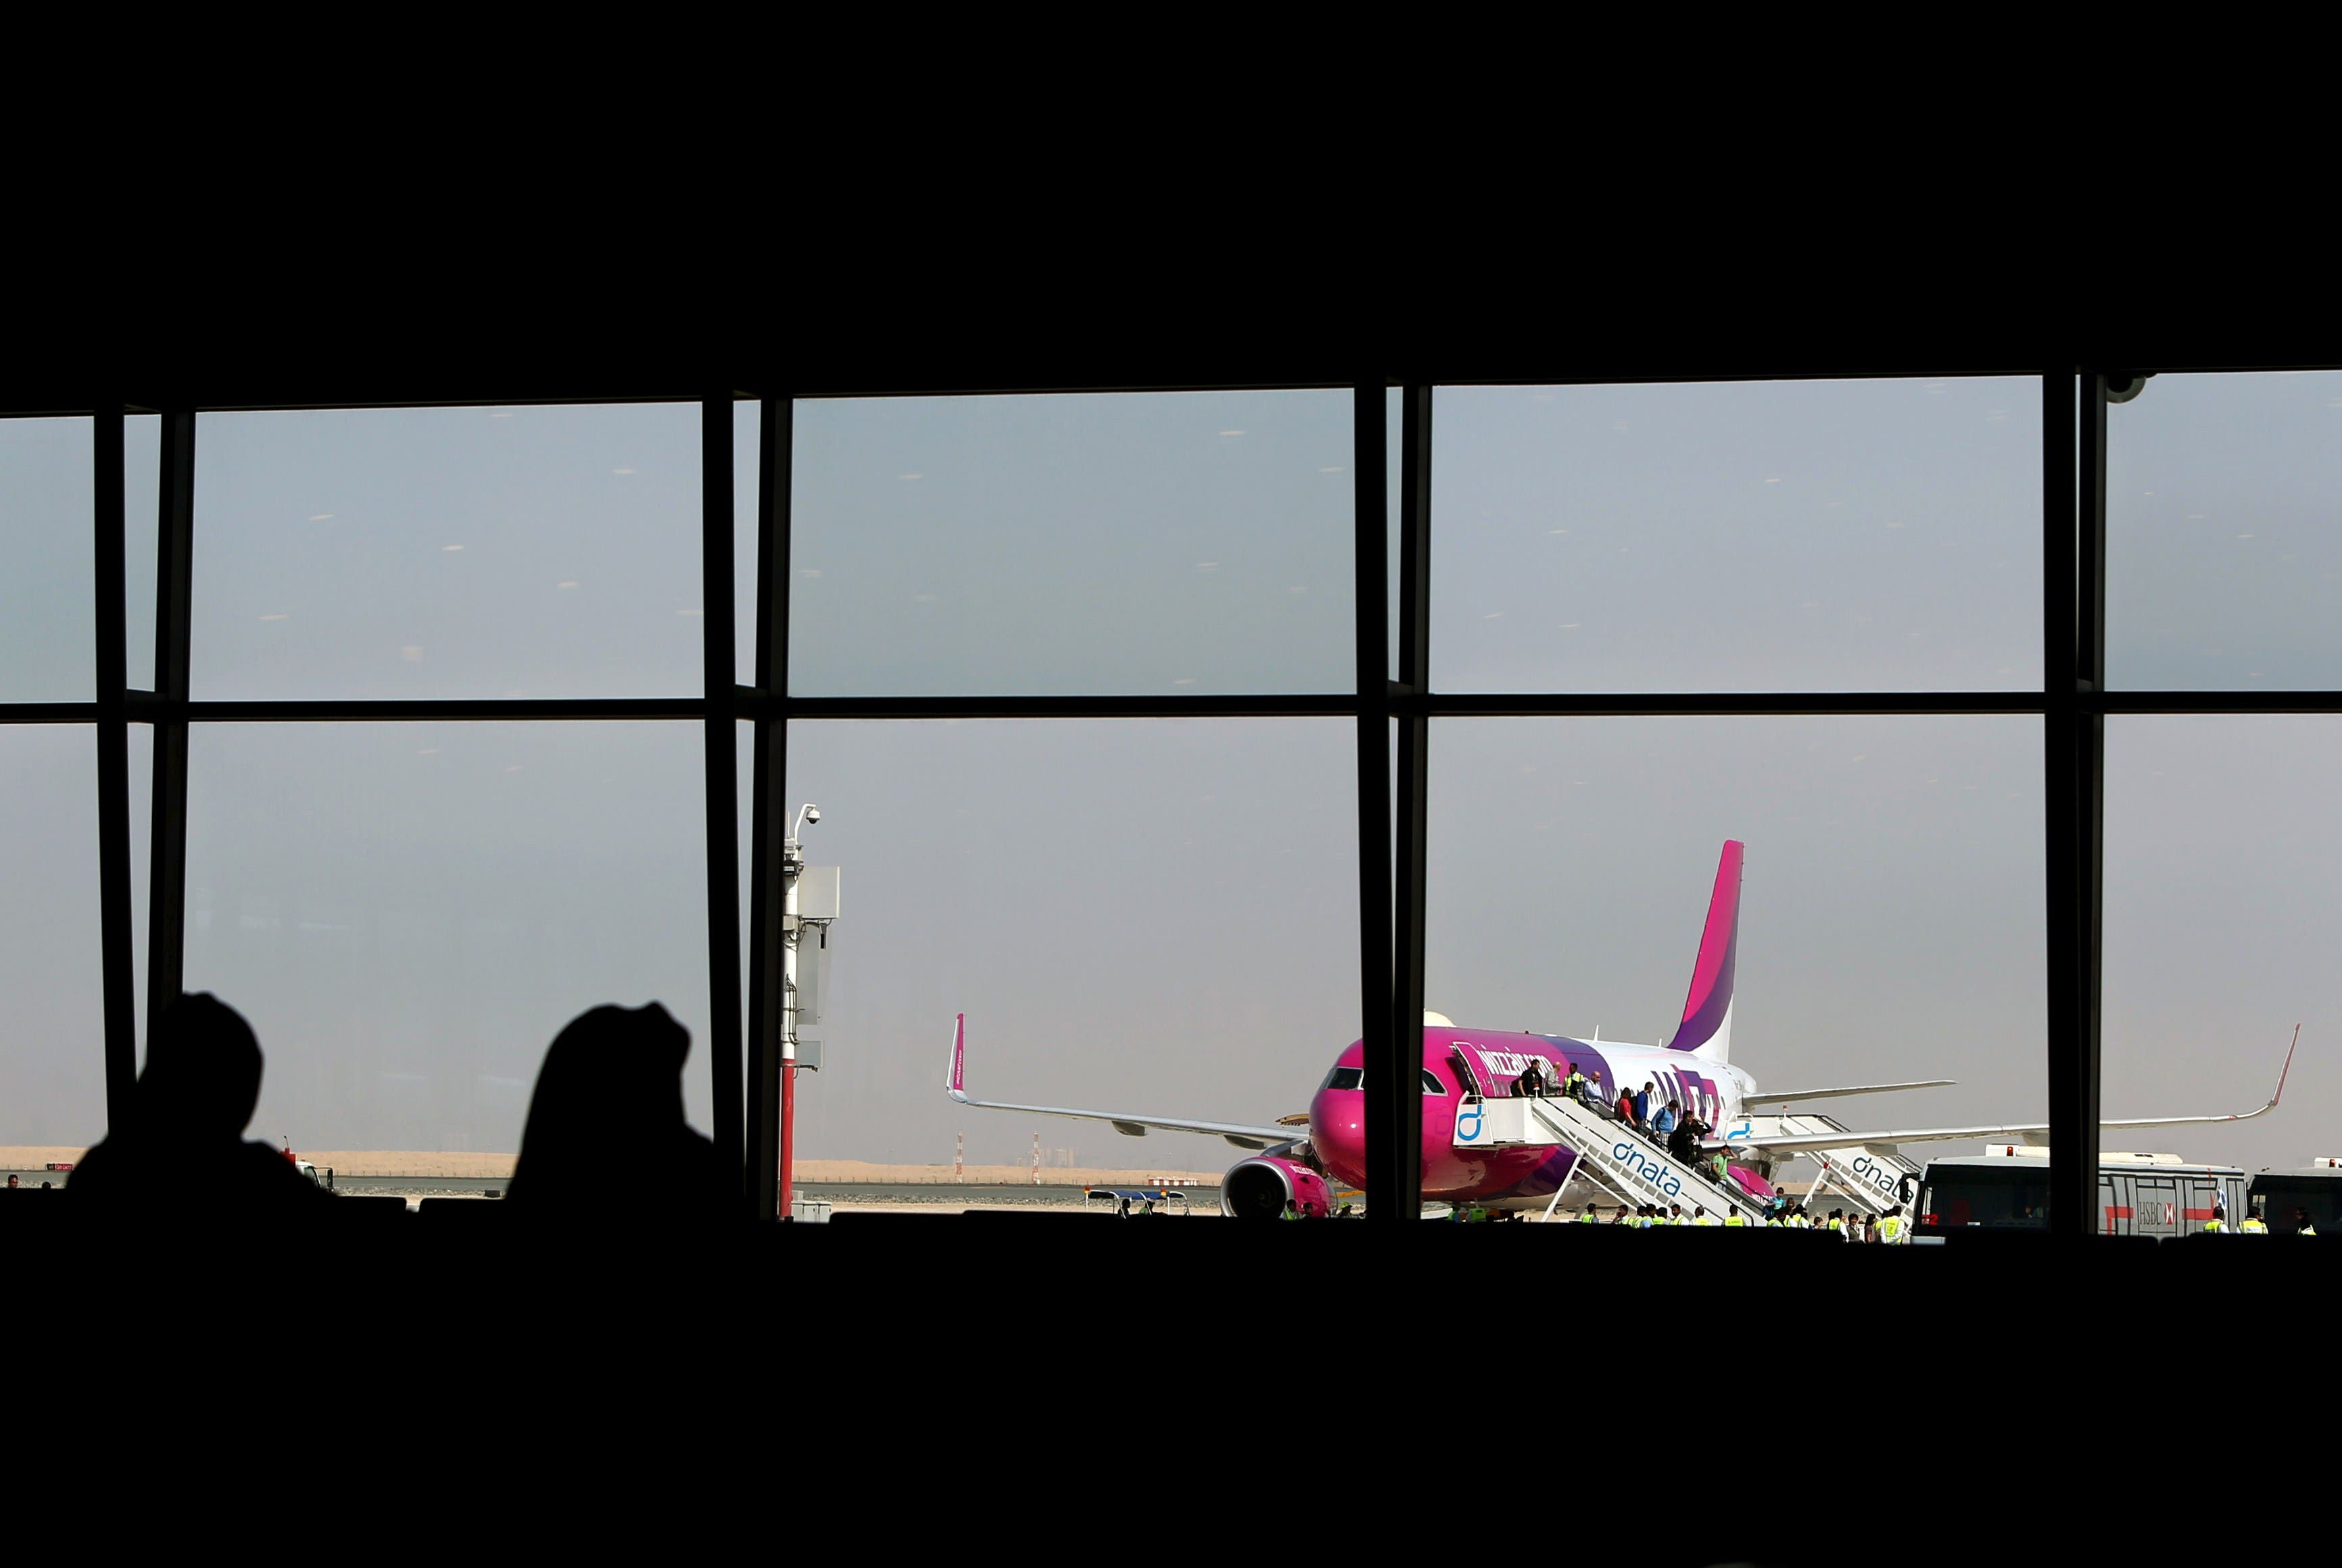 Passengers disembark from a Wizz Air flight at the newly opened Al-Maktoum International airport in Dubai, on October 27, 2013. (AFP)